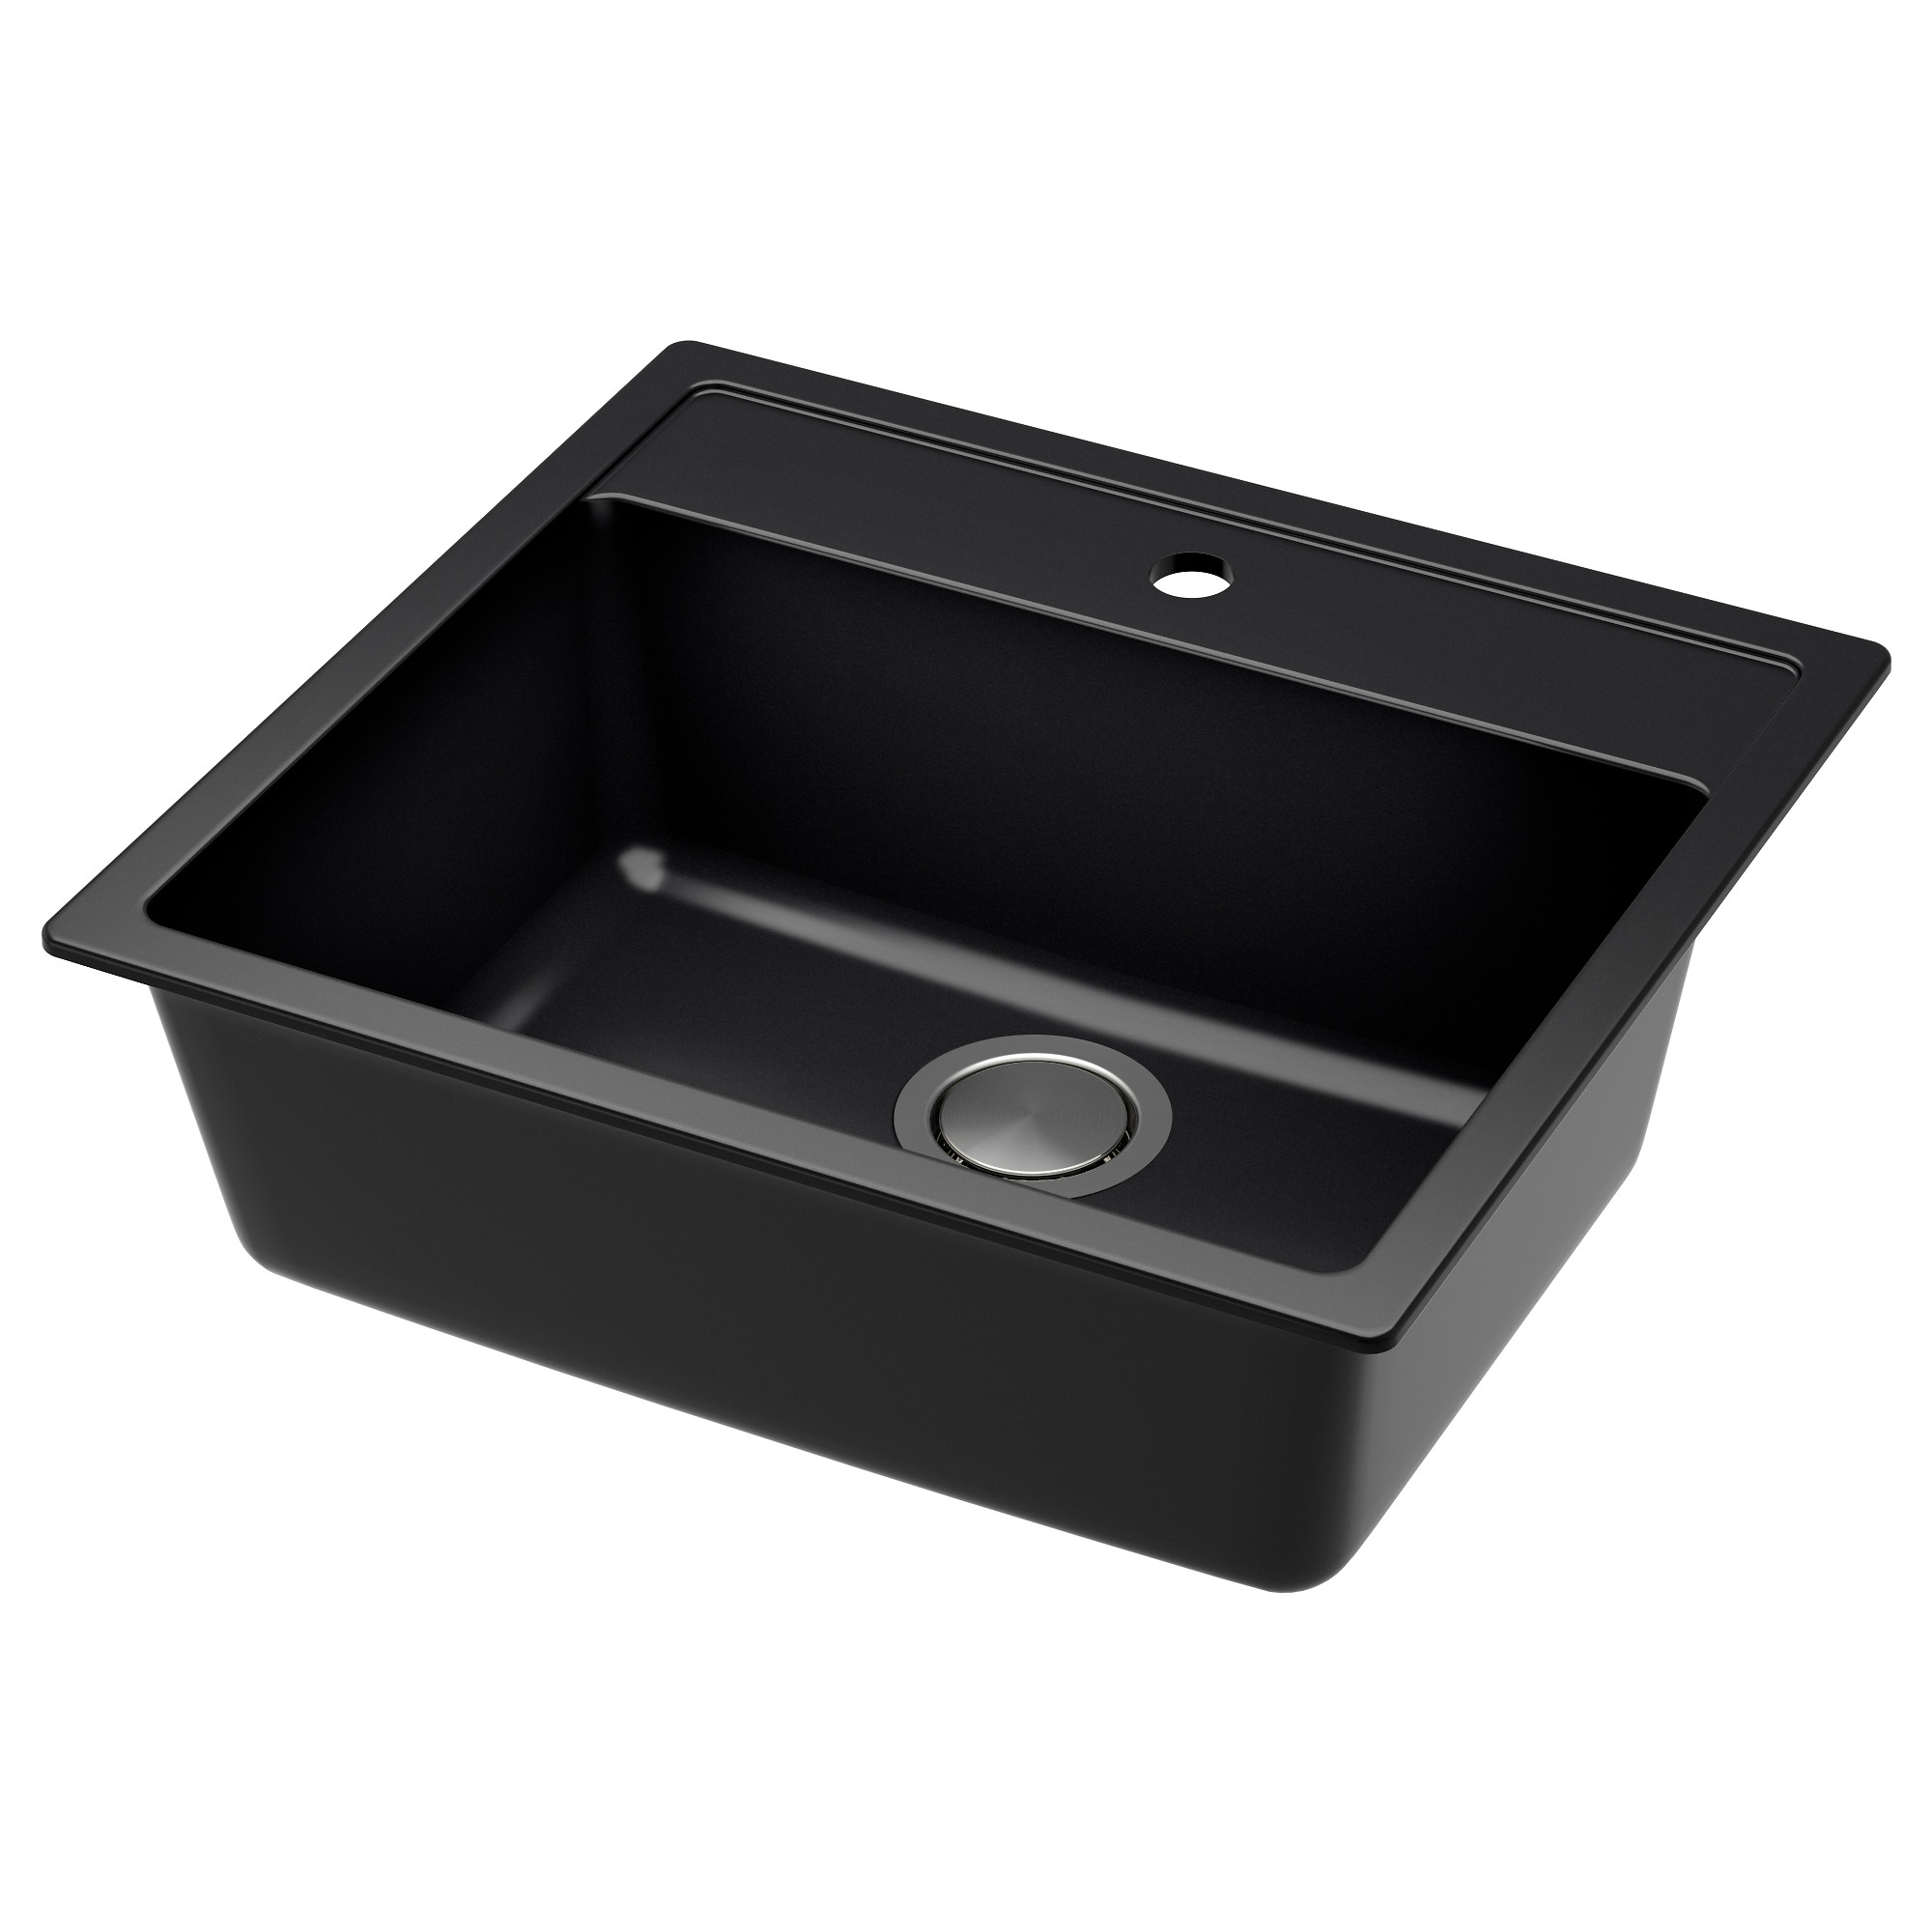 H Llviken Sink Black Quartz Composite Length 22 Depth 19 5